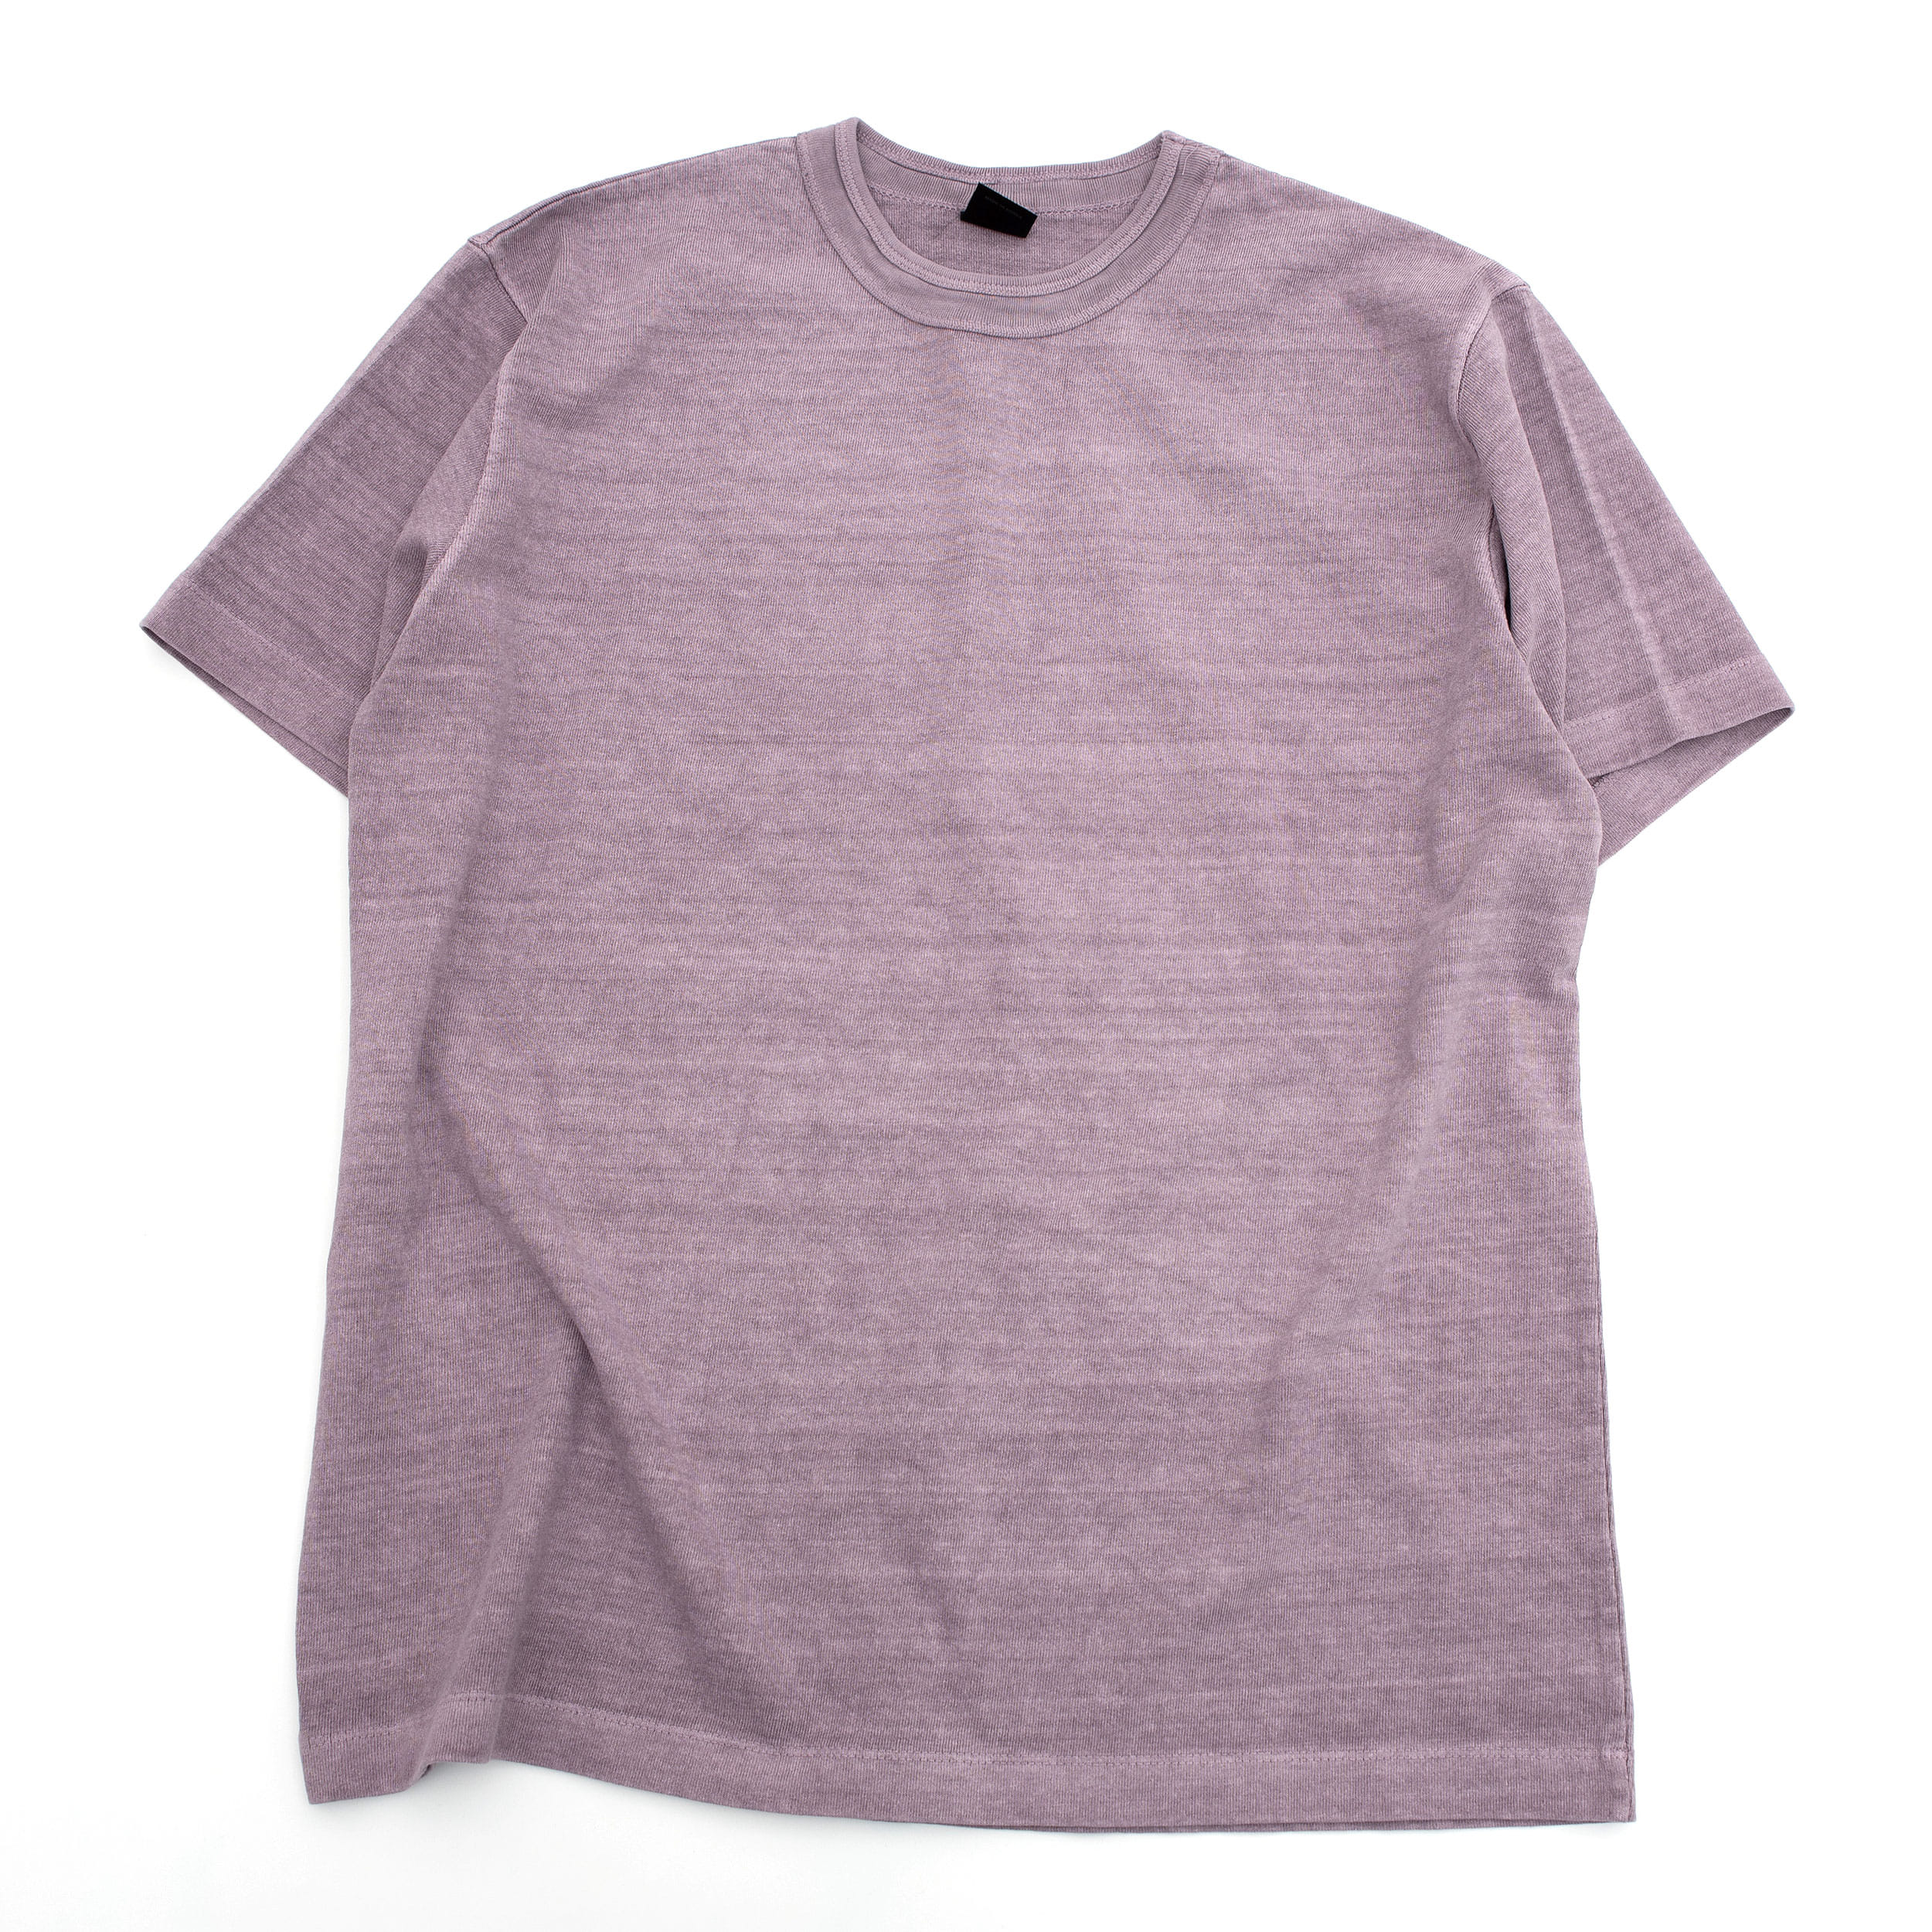 SUMMER DYED BASIC T SHIRT (PURPLE)